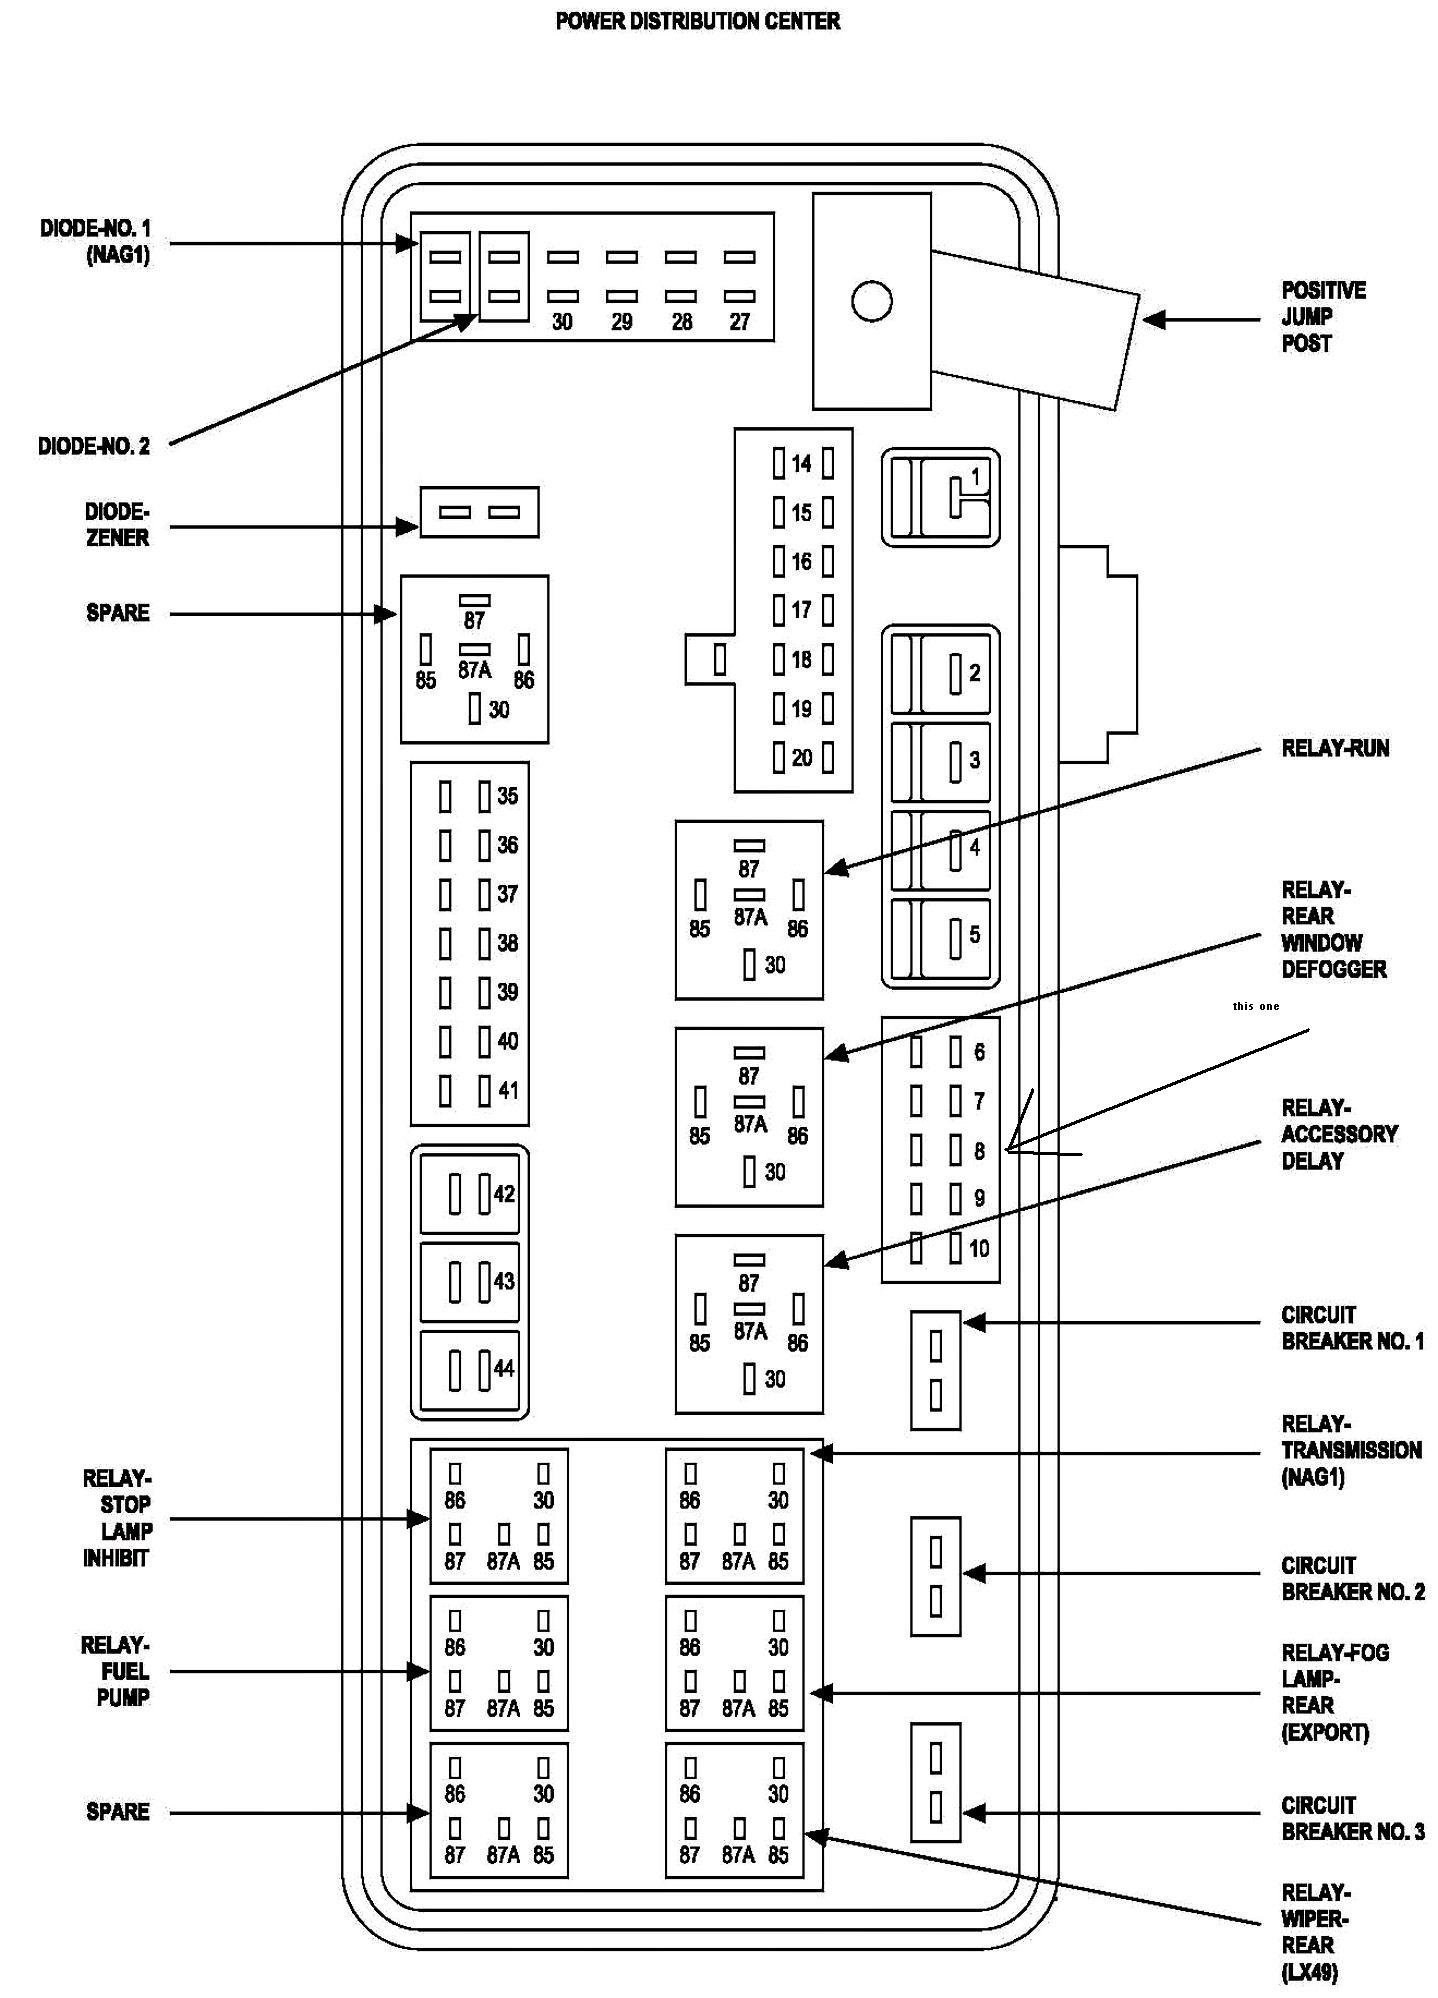 1996 Dodge Ram 2500 Fuse Box Diagram Wiring Diagram Yer